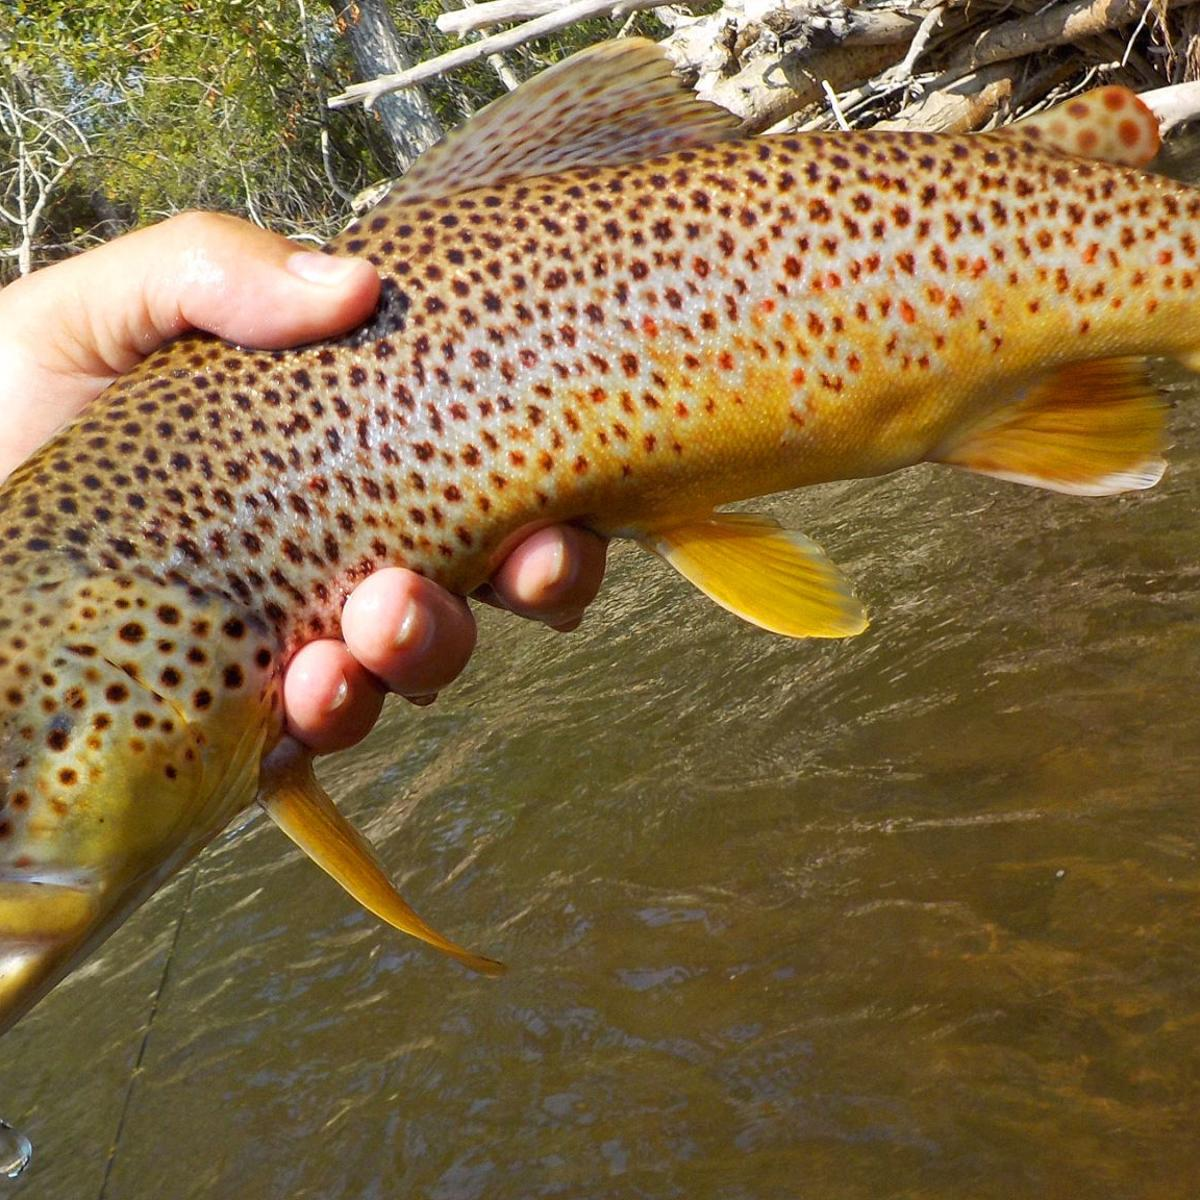 Montana fishing report: Brown trout bite surges as fall